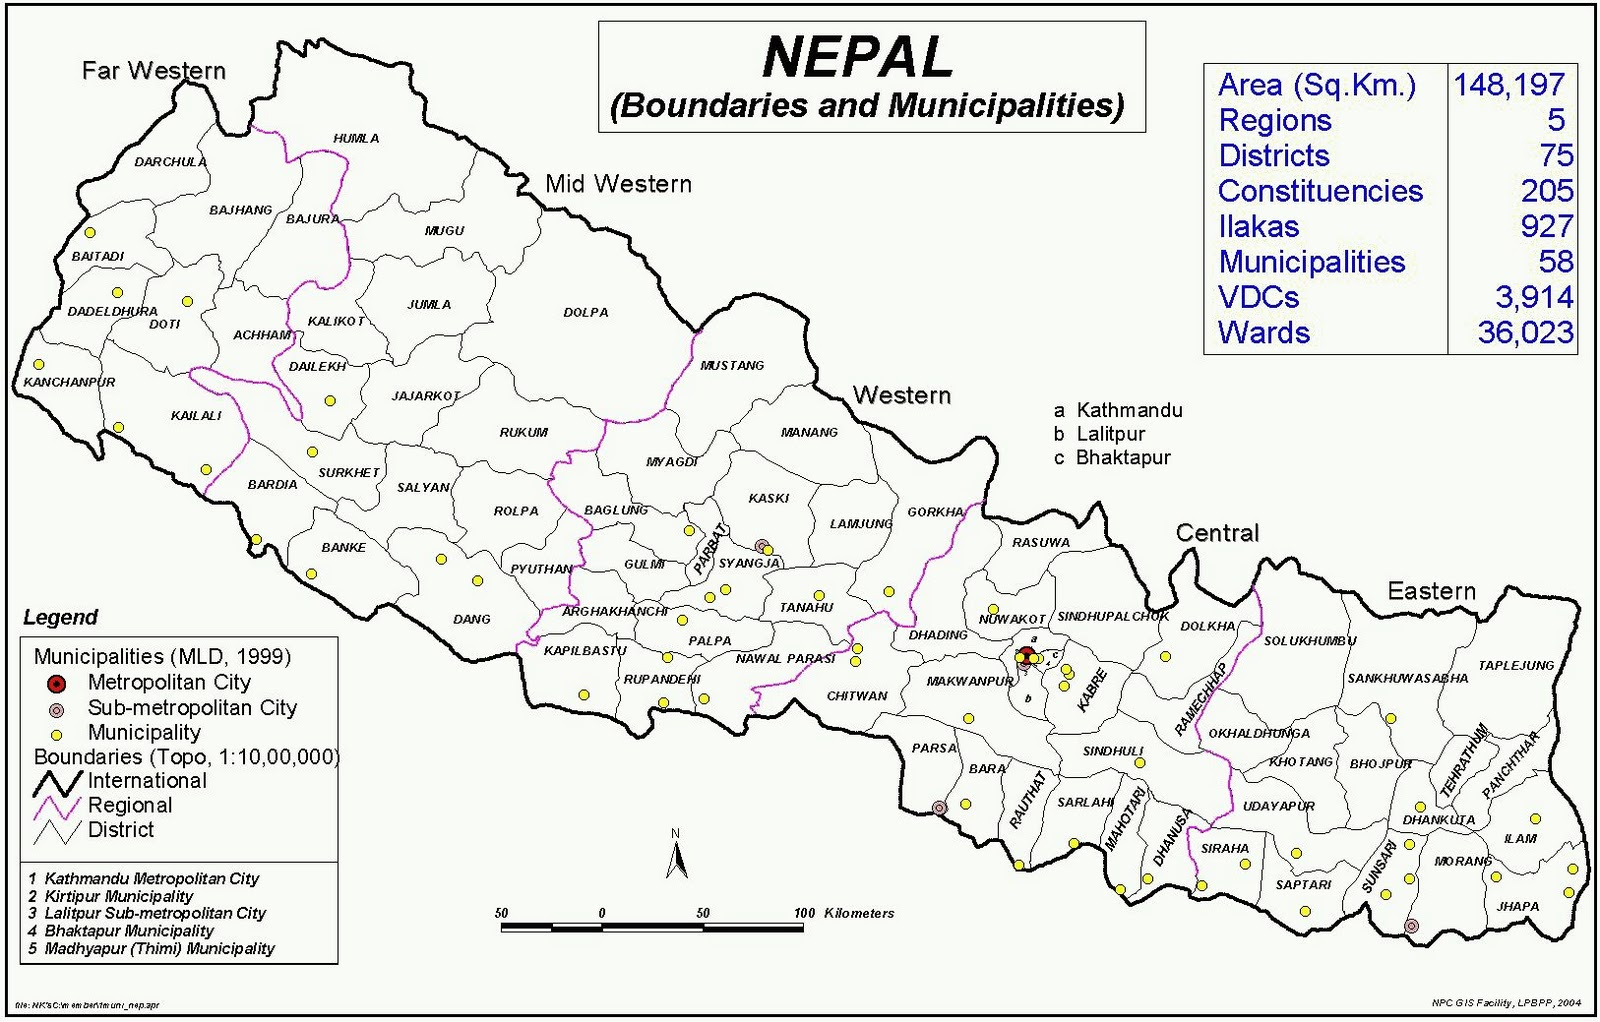 Map of Nepal with regional boundaries and demographics